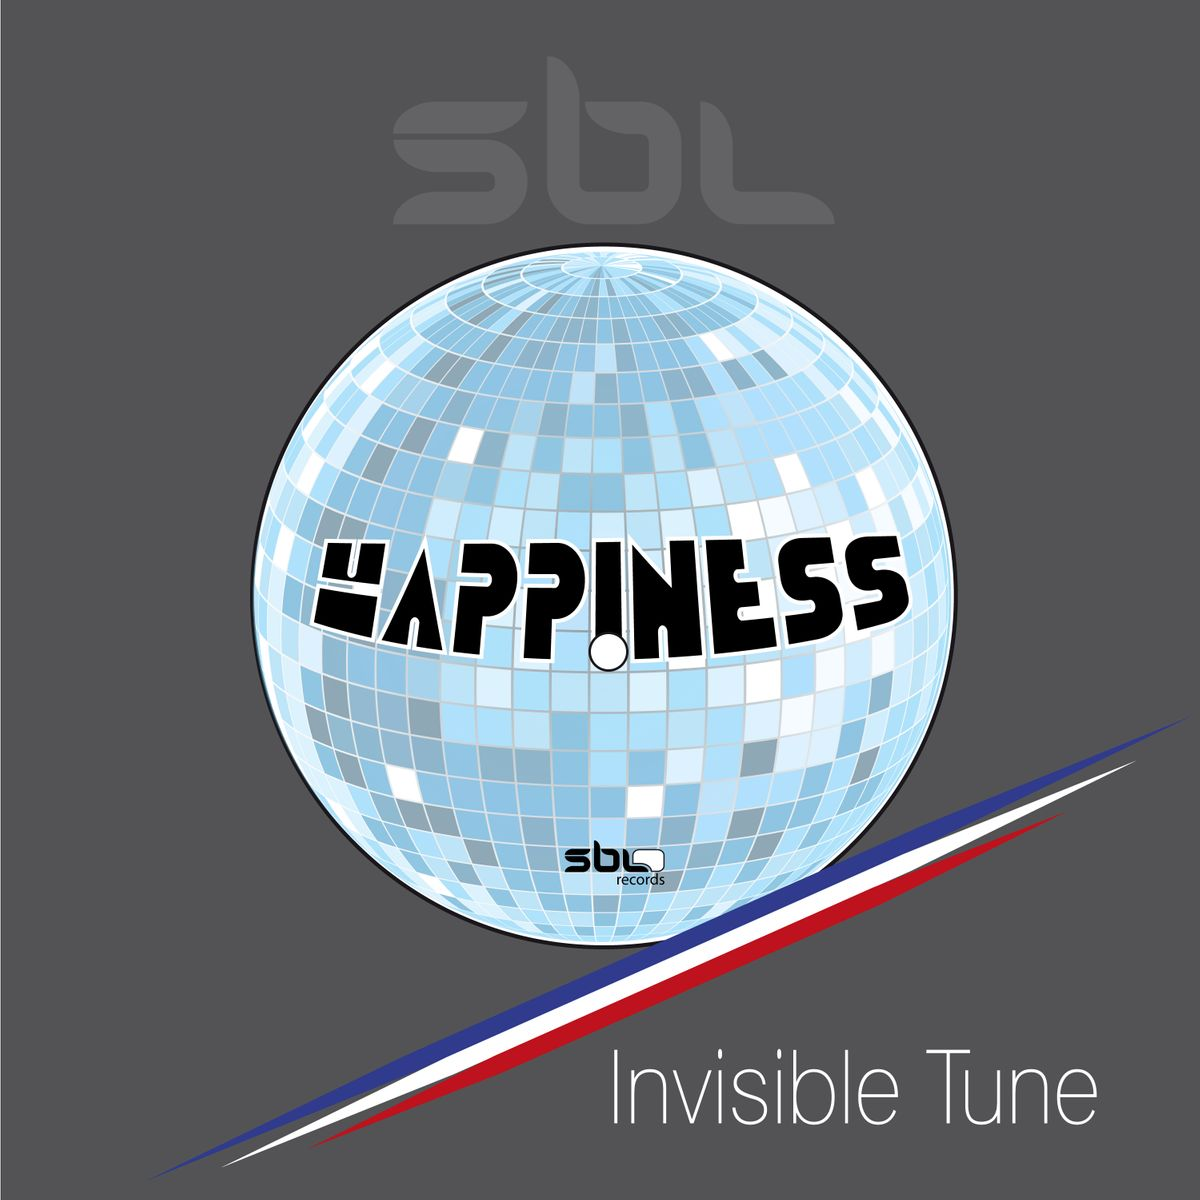 Invisible Tune - Happiness